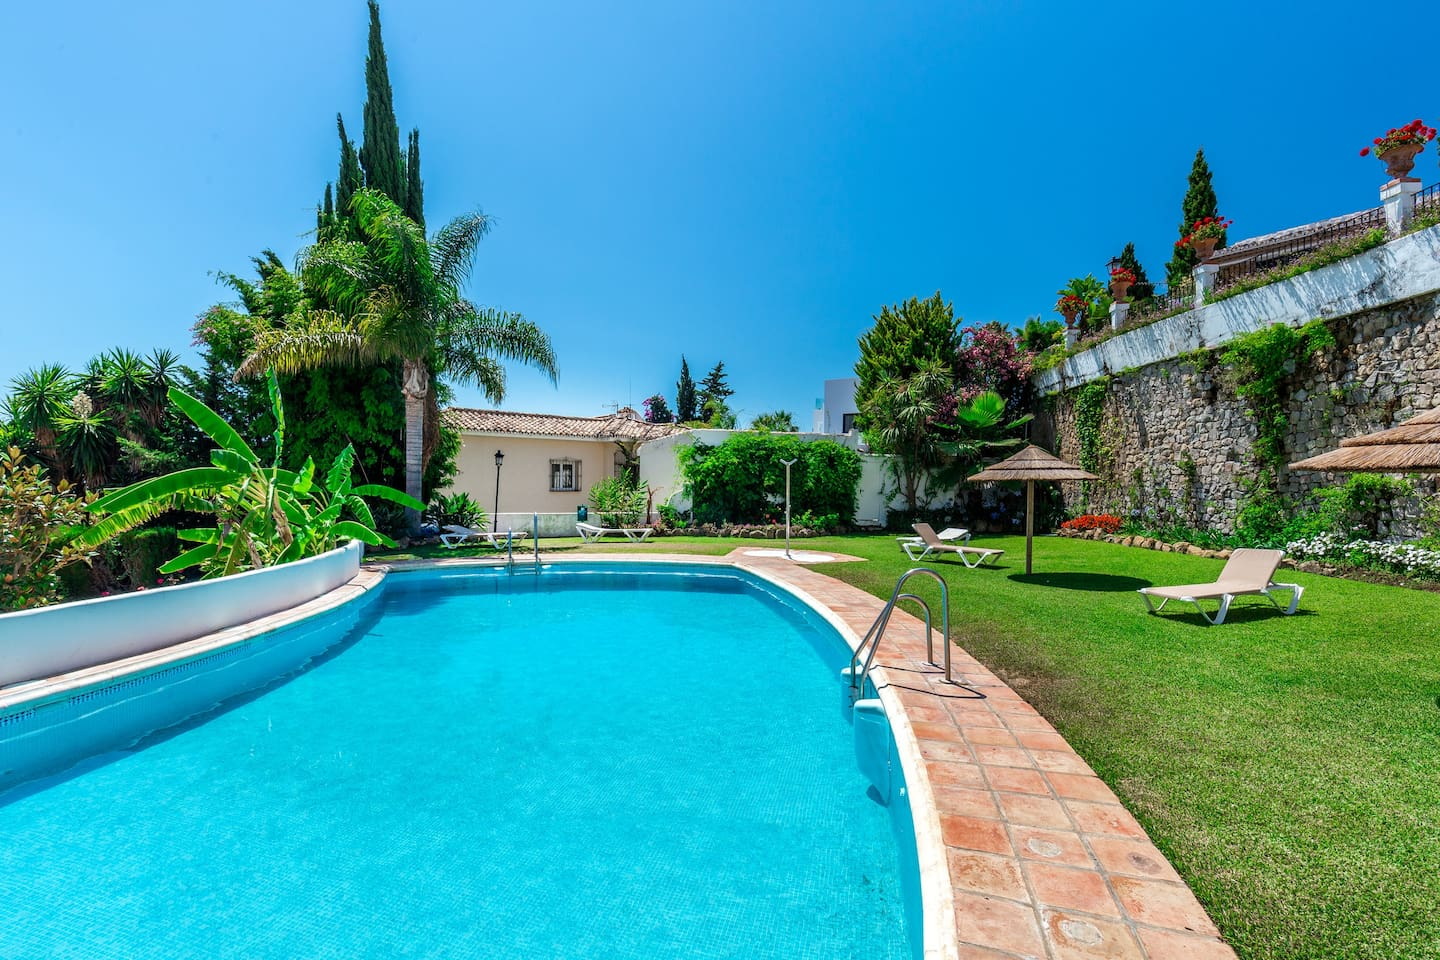 Puerto Banus Vacation Rental -townhouse for rent walking distance to la Sala and Puerto Banus. A few  mins drive to Marbella. 5 Minute Walk to Puerto Banus, 10 minutes walk to the beach, with Pool & Internet.